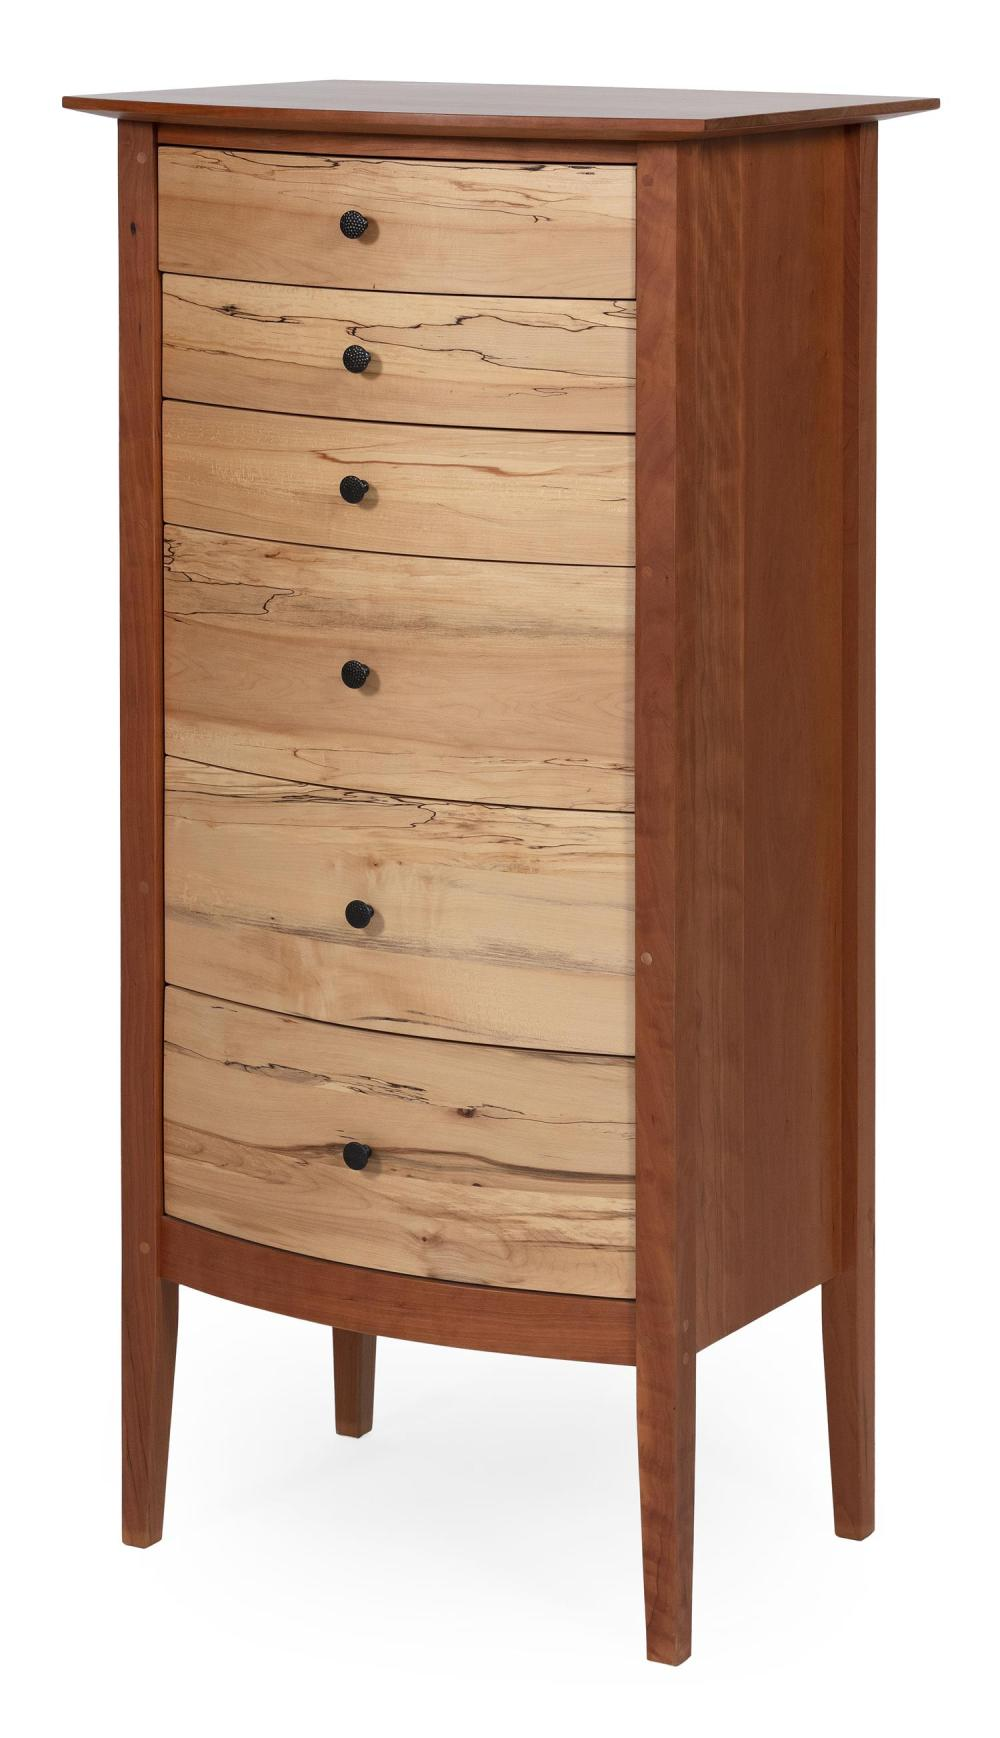 """POMPANOOSUC MILLS SIX-DRAWER BOWFRONT LINGERIE CHEST In cherry and hickory. Factory marks. Height 47"""". Width 23"""". Depth 18.5""""."""